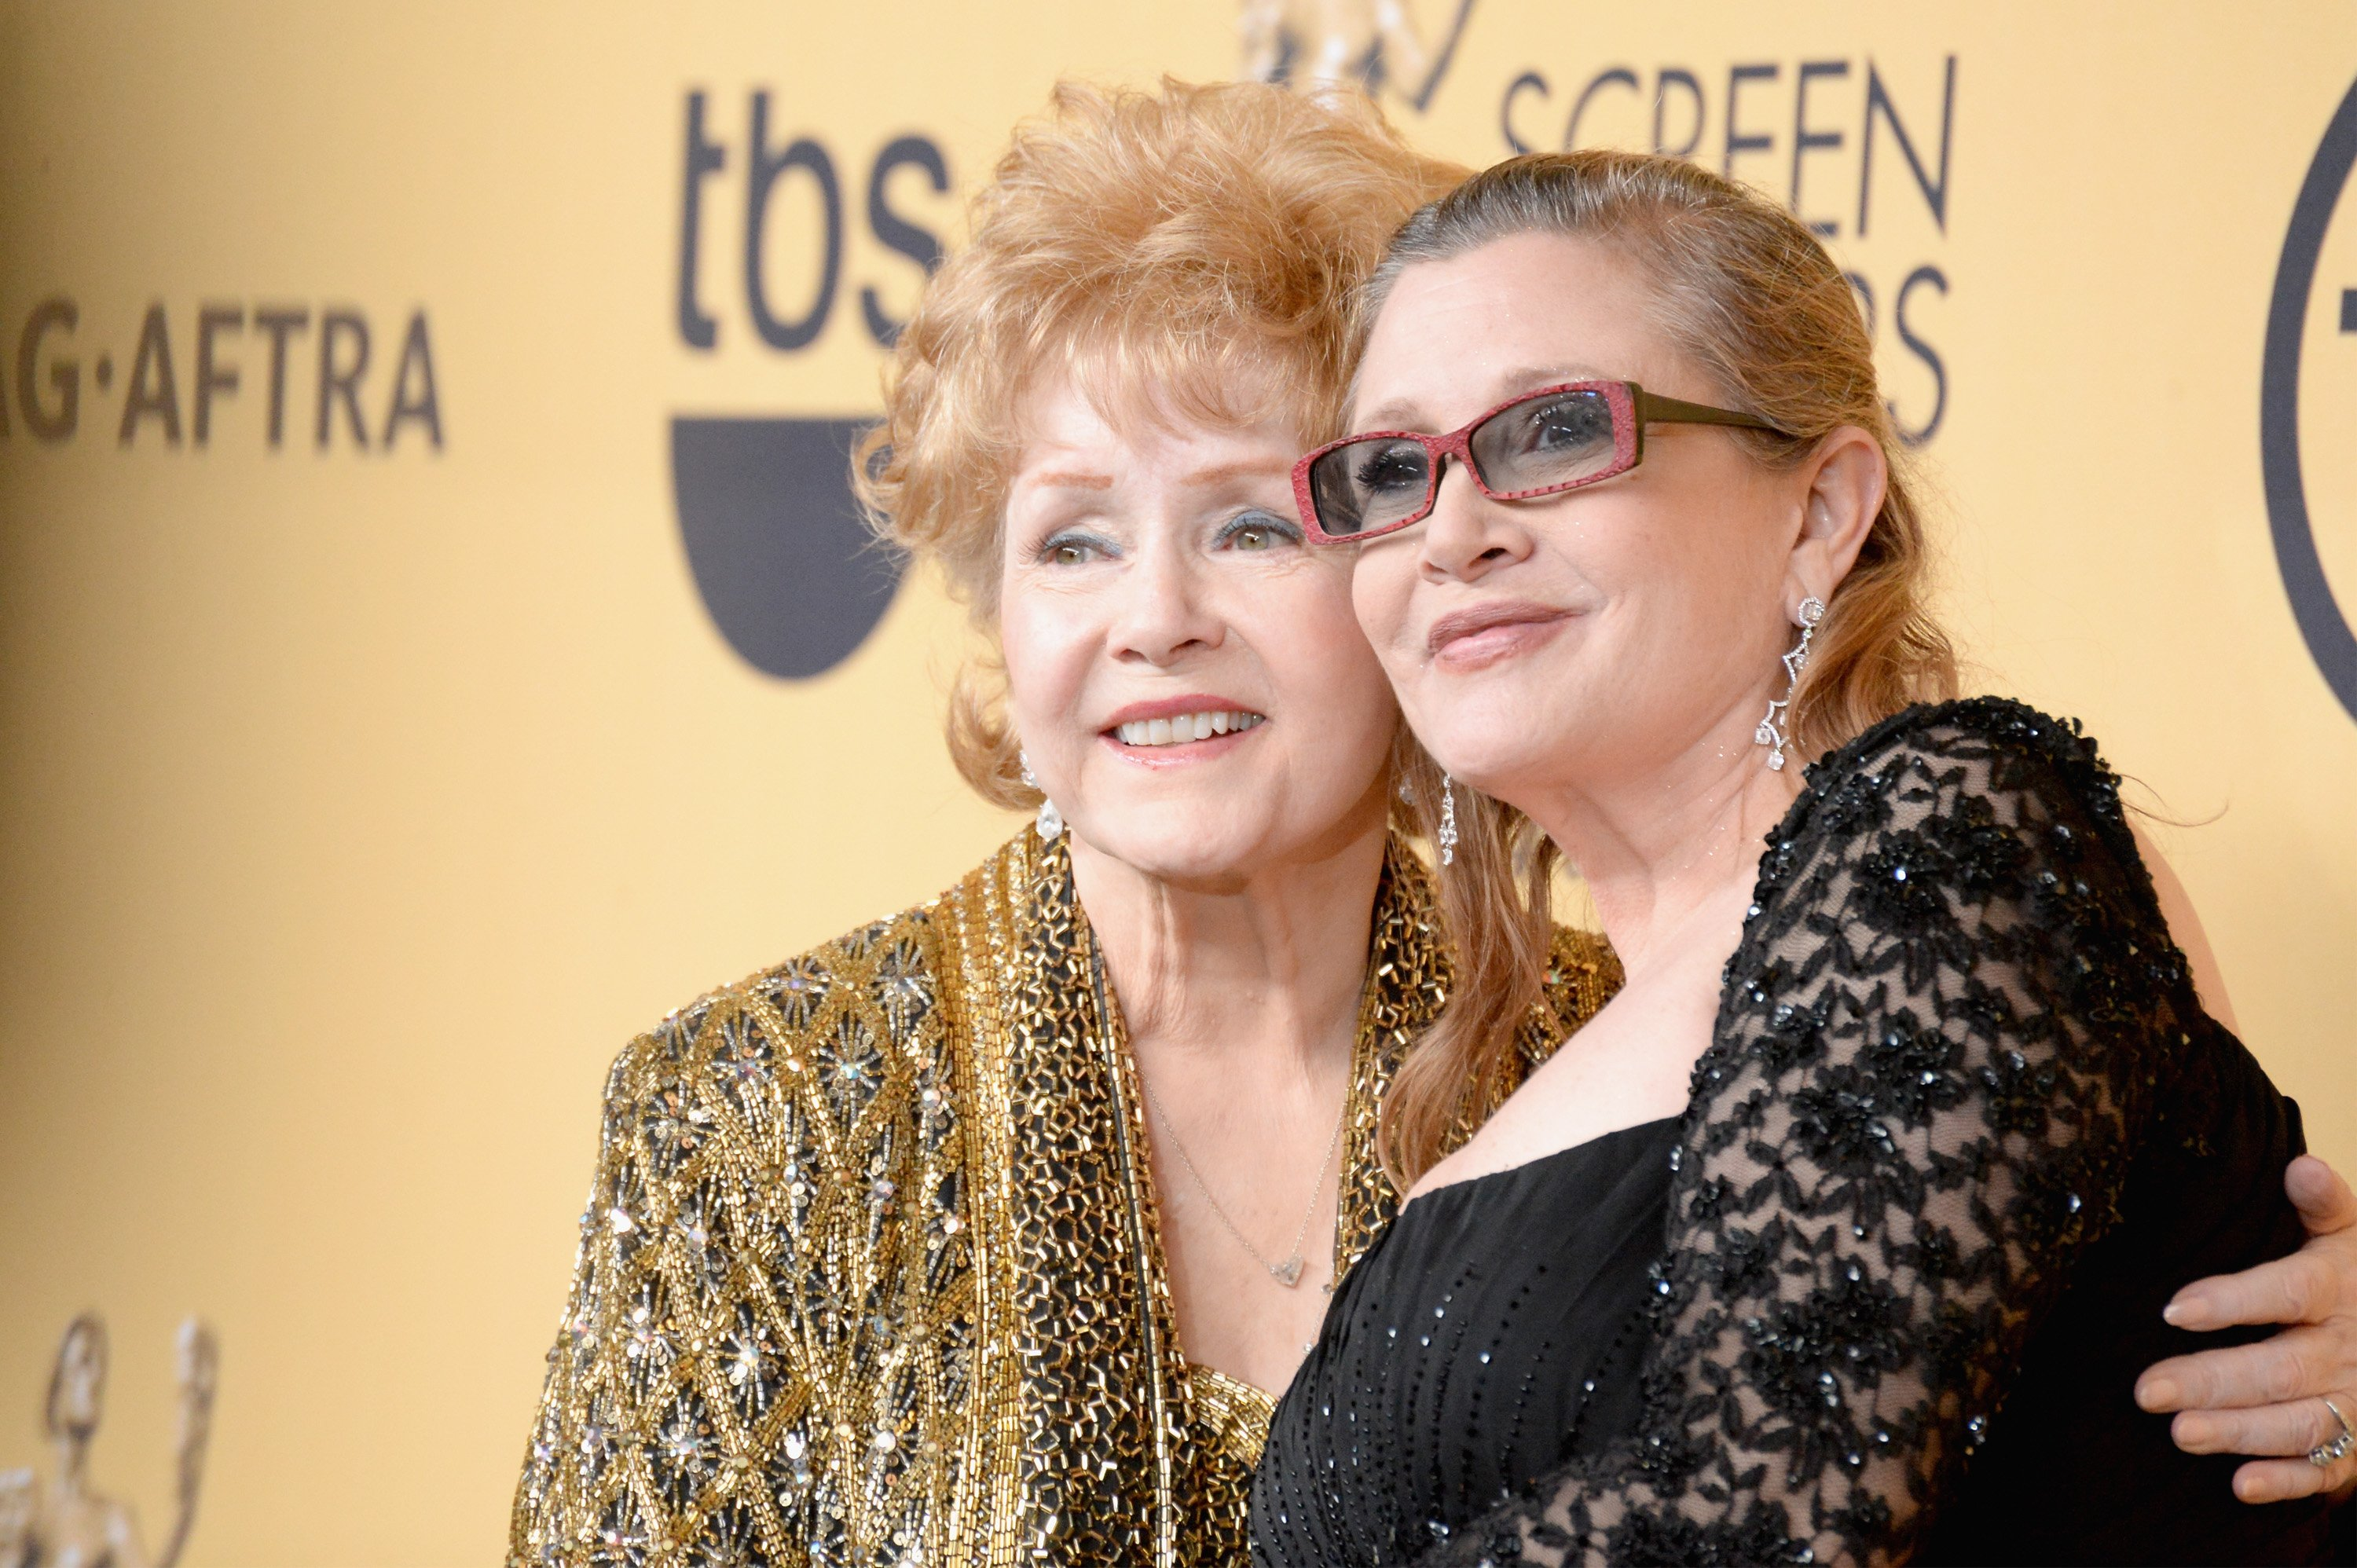 Carrie Fisher and Debbie Reynolds at the 21st Annual Screen Actors Guild Awards in Los Angeles, 25 January, 2015. | Photo: Getty Images